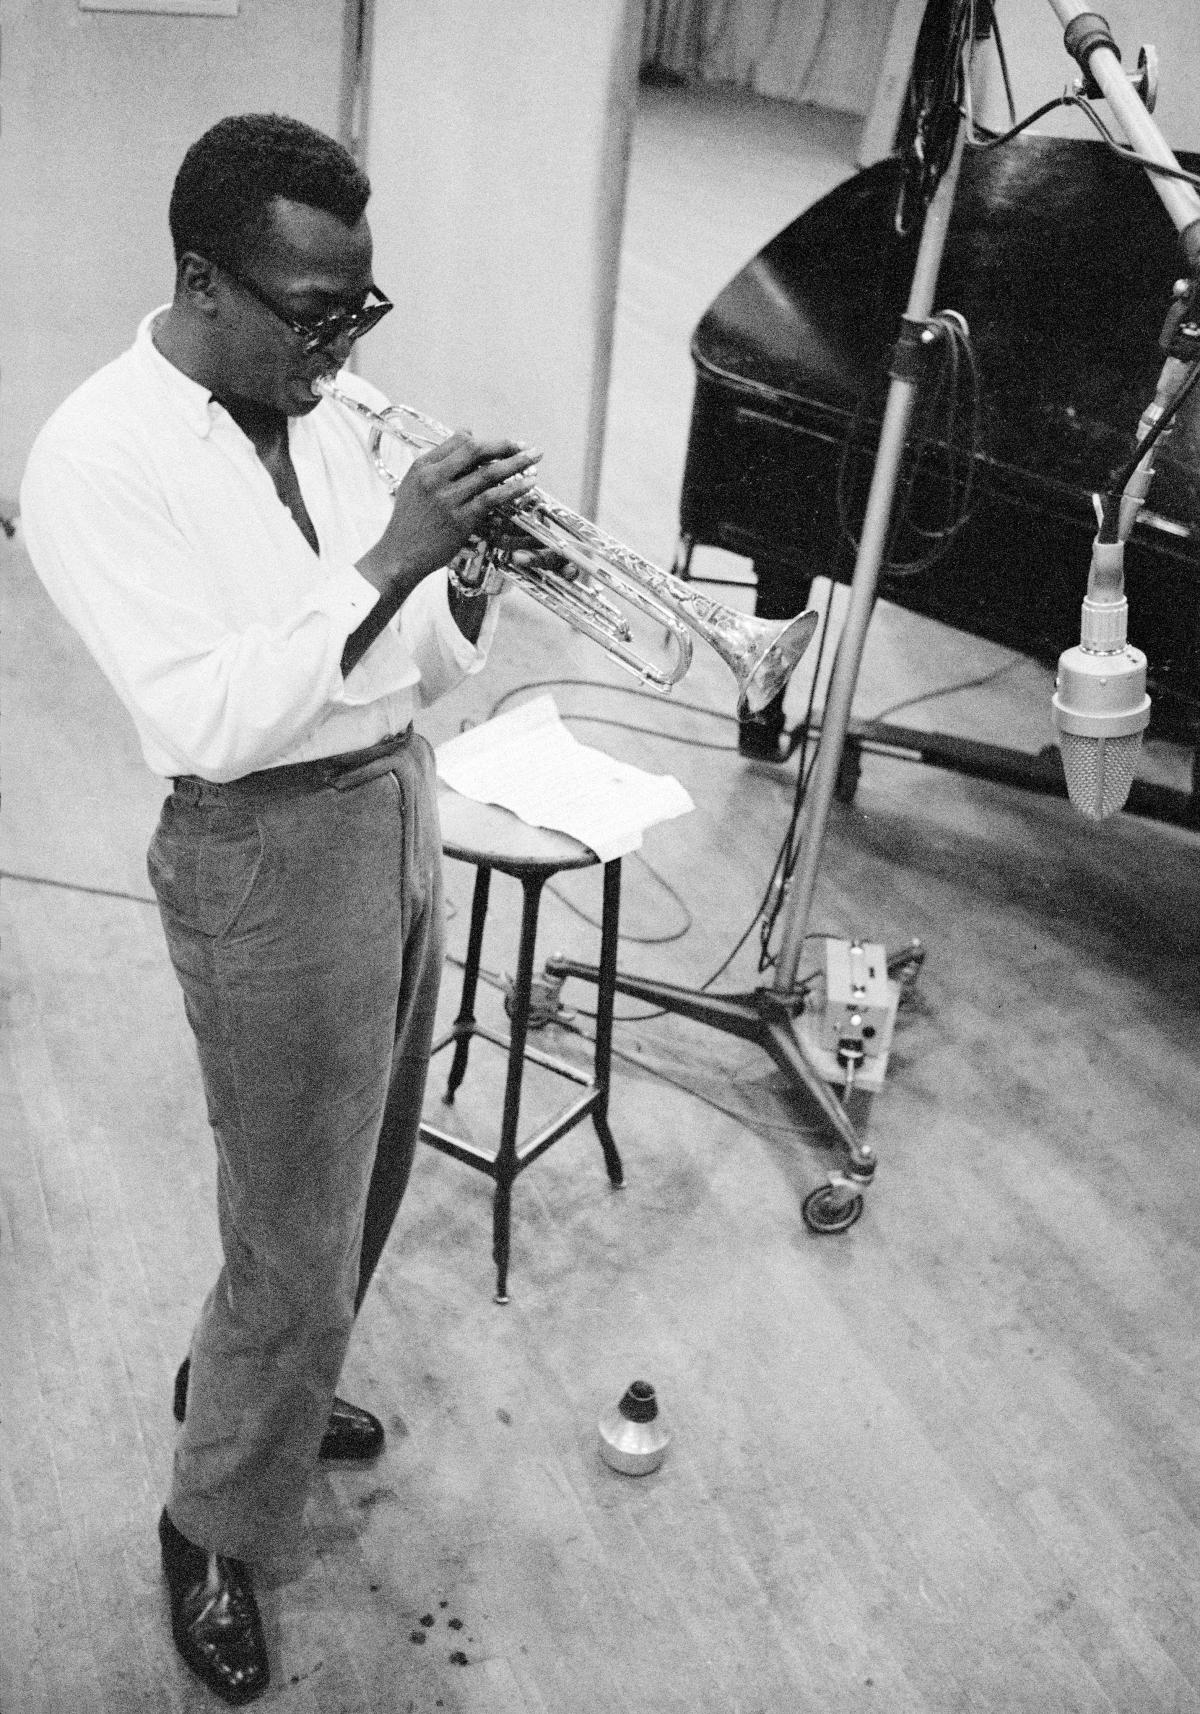 Davis, playing a trombone, wearing dark glasses